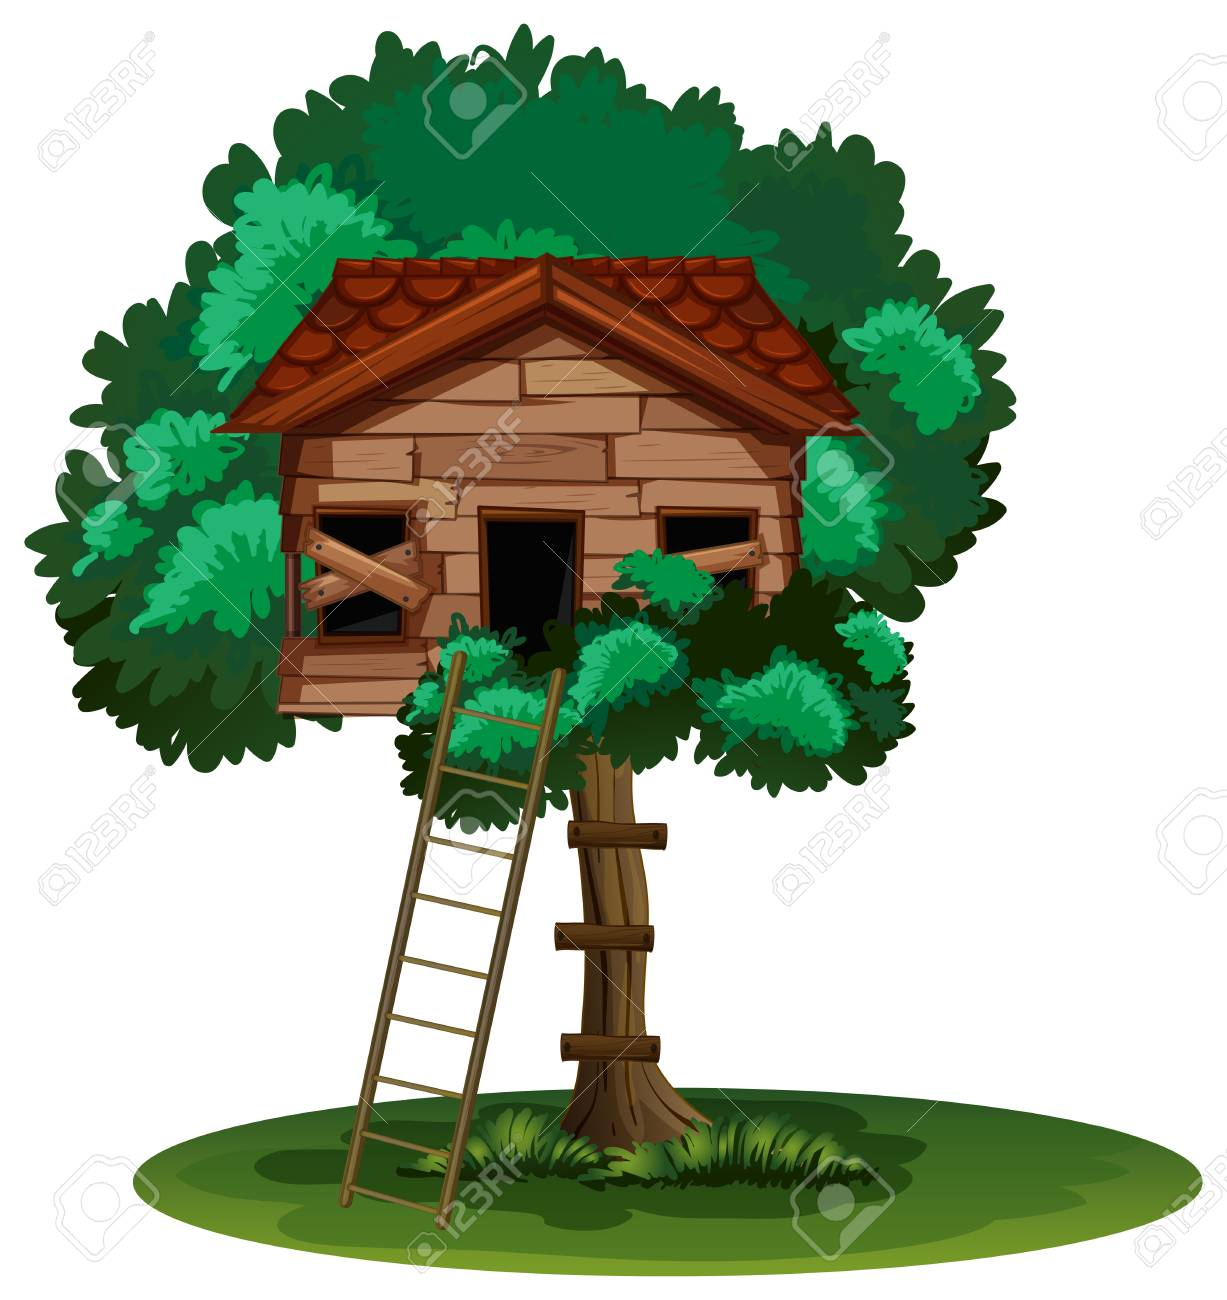 old treehouse on the tree illustration royalty free cliparts rh 123rf com